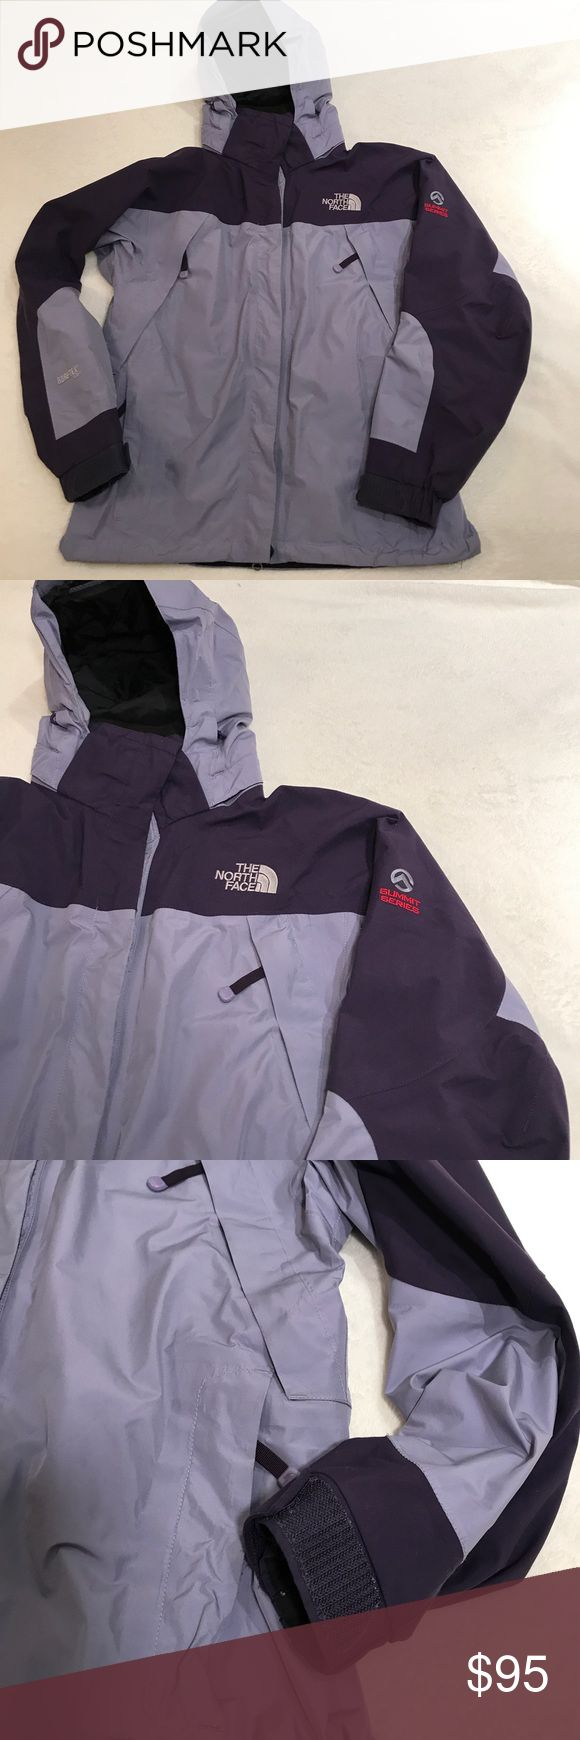 Purple North Face Jacket - Women's Small North Face Jacket. Size small. 2 shades of purple with 2 exterior zip-up pockets & 2 exterior zip-up ventilation slits. Full-zip w/velcro closures. Velcro closures on the sleeves near the wrist as well. Drawstring at the waist & inside of the hood to help you bundle up during colder temperatures. Water-proof & wind resistant Gore-Tex XCR exterior that is 100% Nylon. Versatile and breathable for good mobility when tackling the outdoors. Goes great…